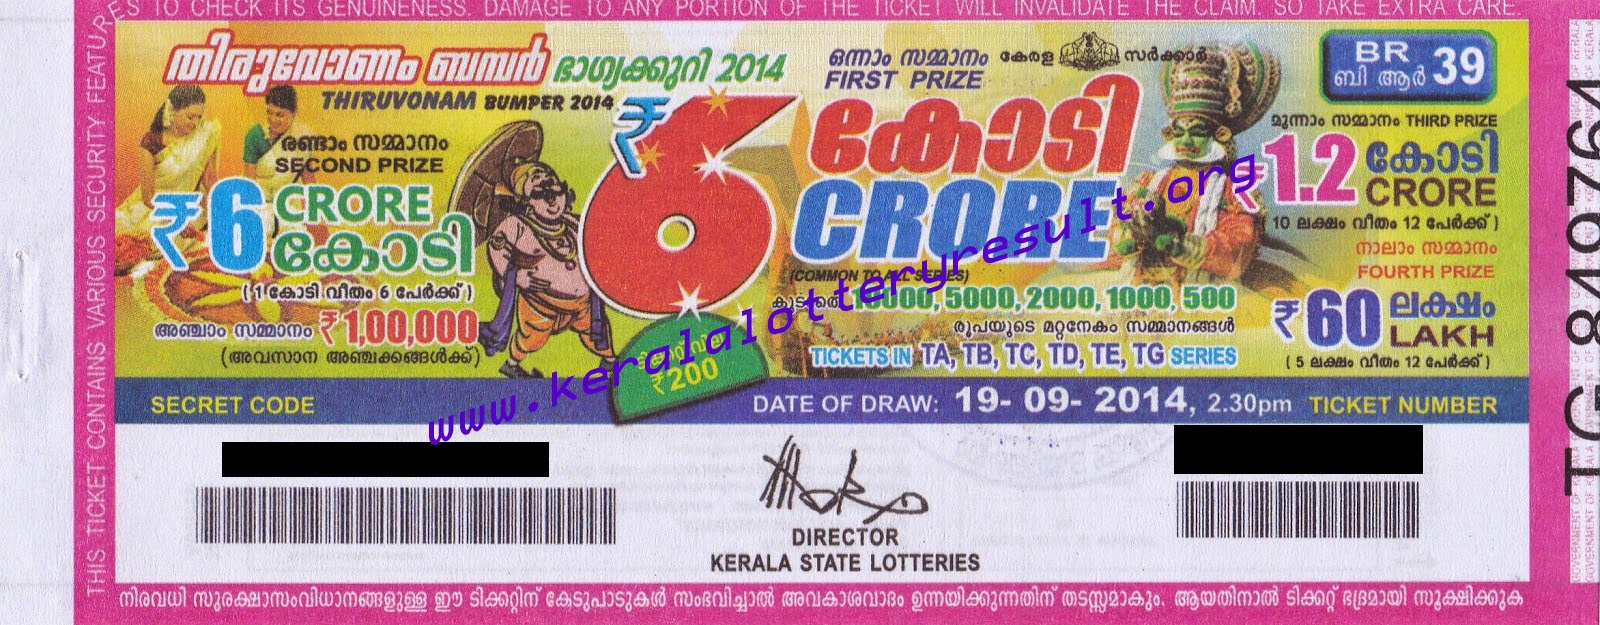 Kerala Lottery Ticket and Kerala Lottery Result